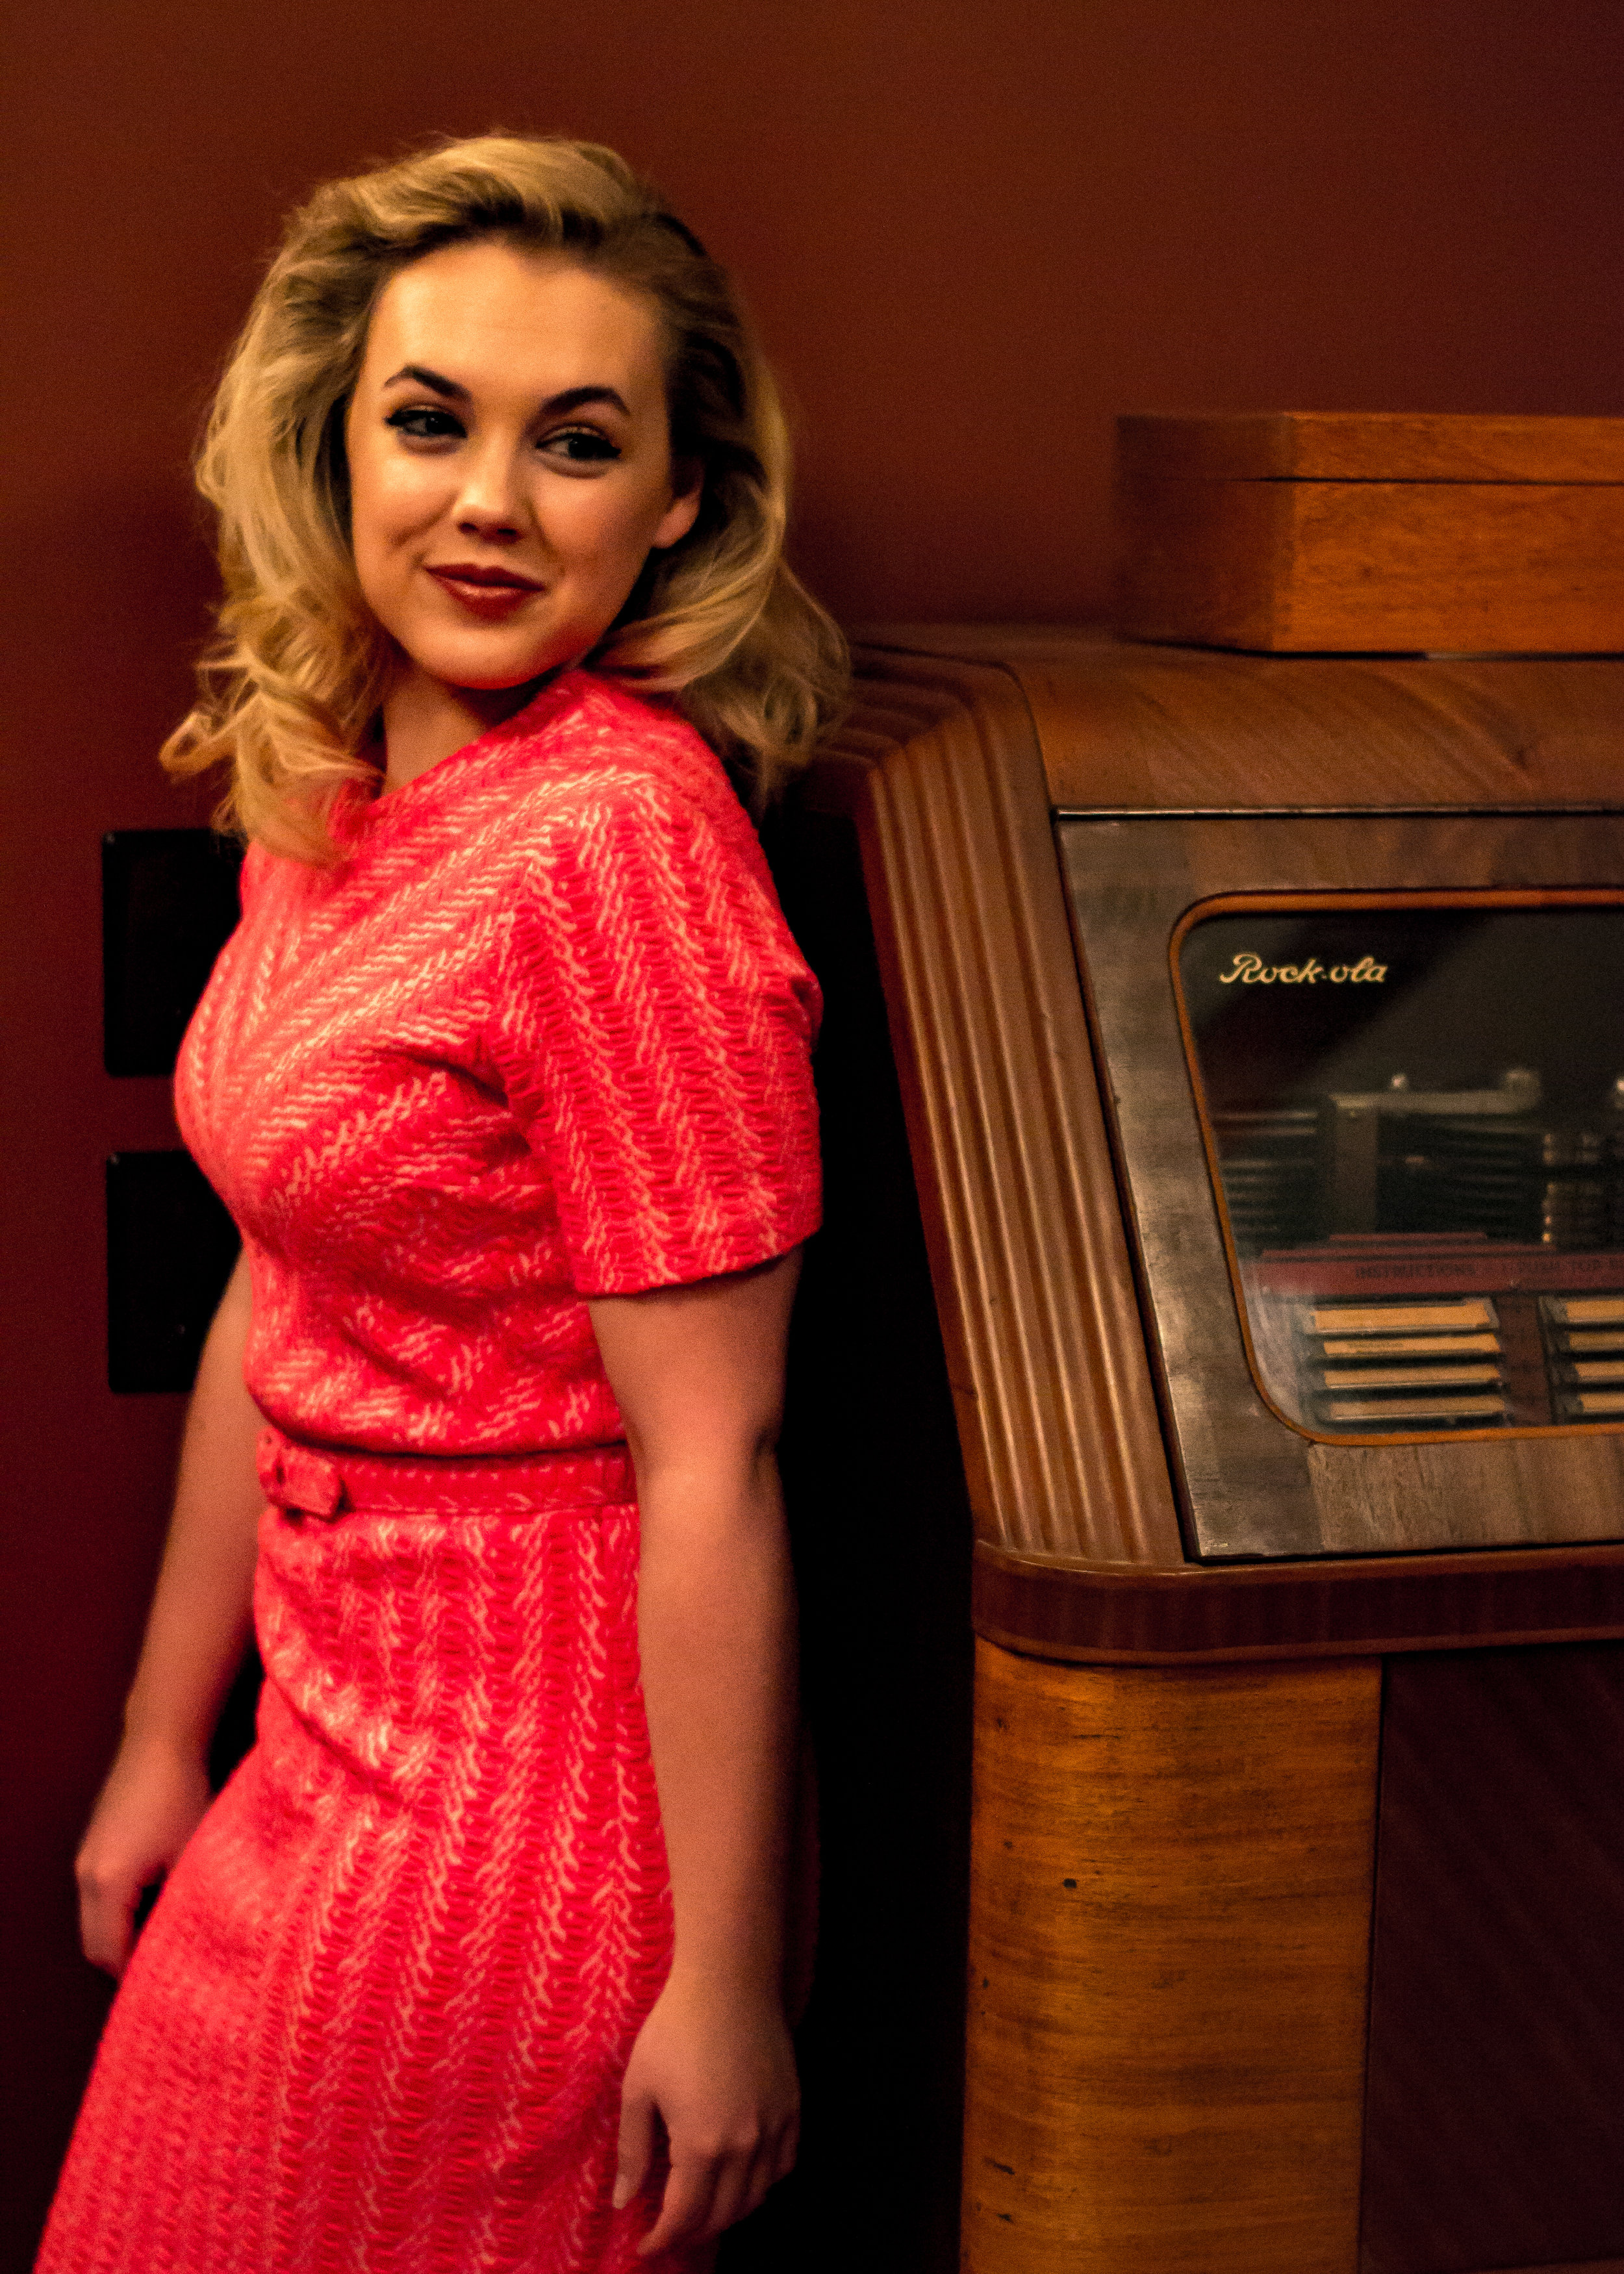 vday look 1 record machine from side.jpg